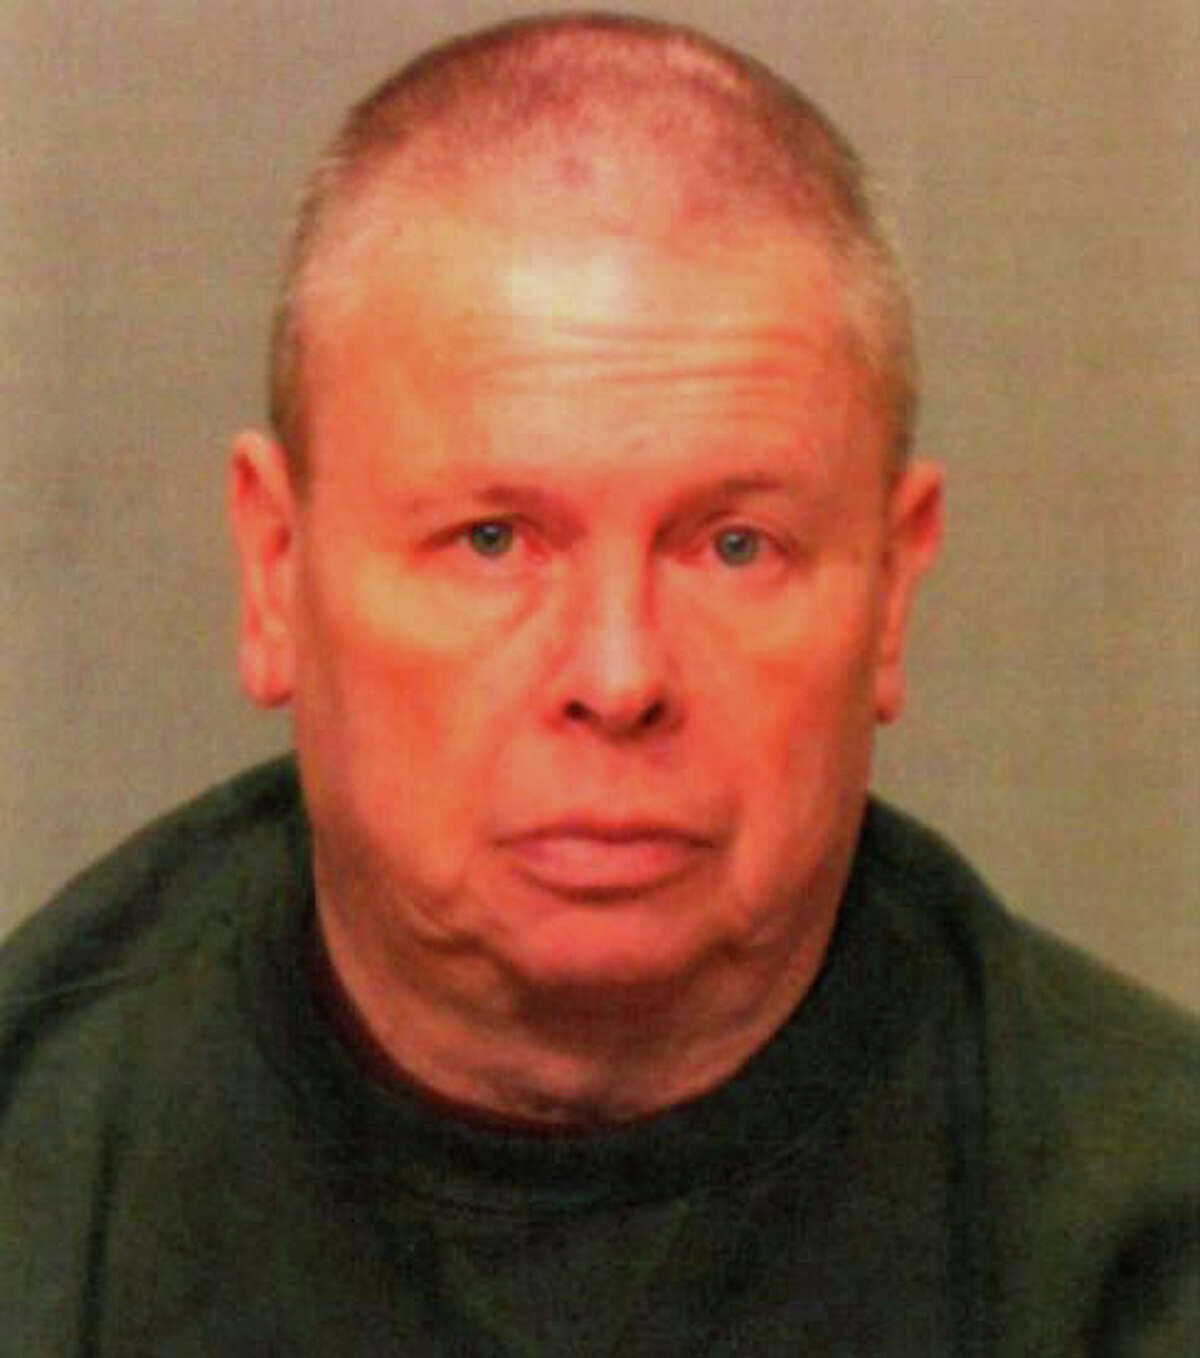 Thomas Herrmann, 59, of Madison, is charged with first-degree larceny, first-degree forgery and criminal impersonation.